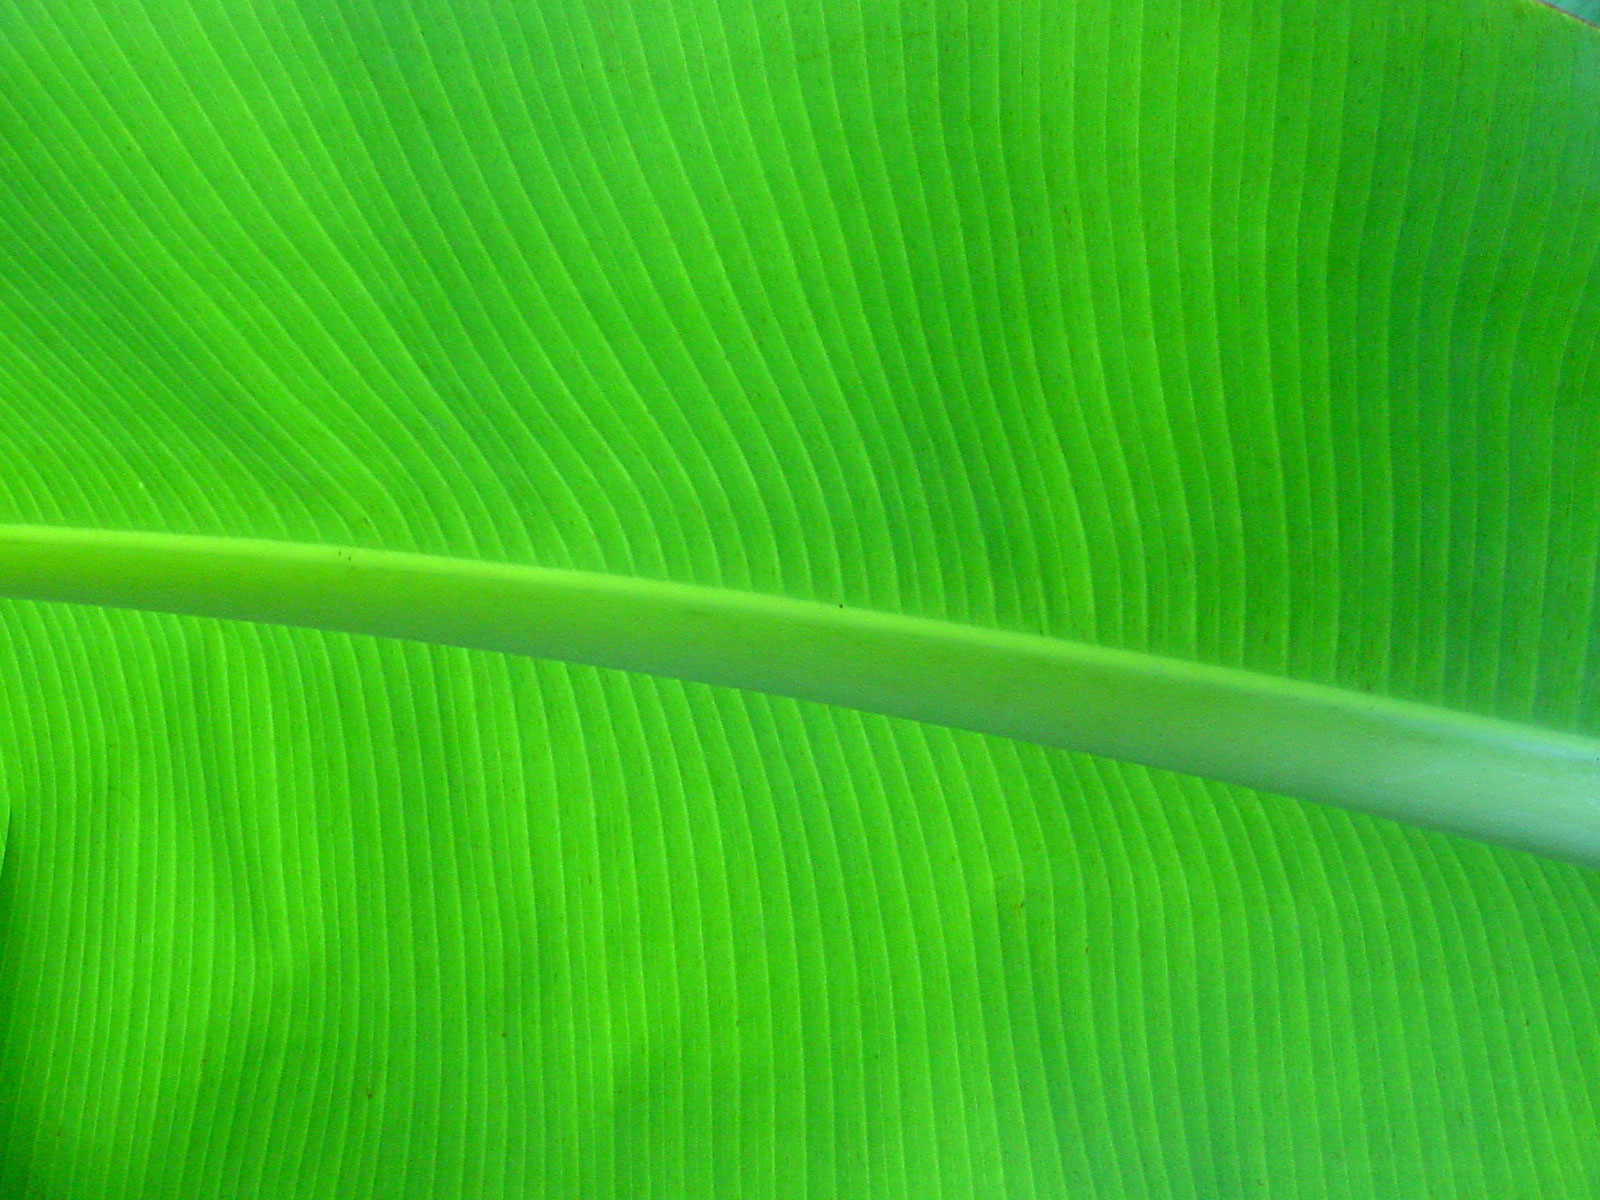 Banana palm leaf by sassenach 1600x1200